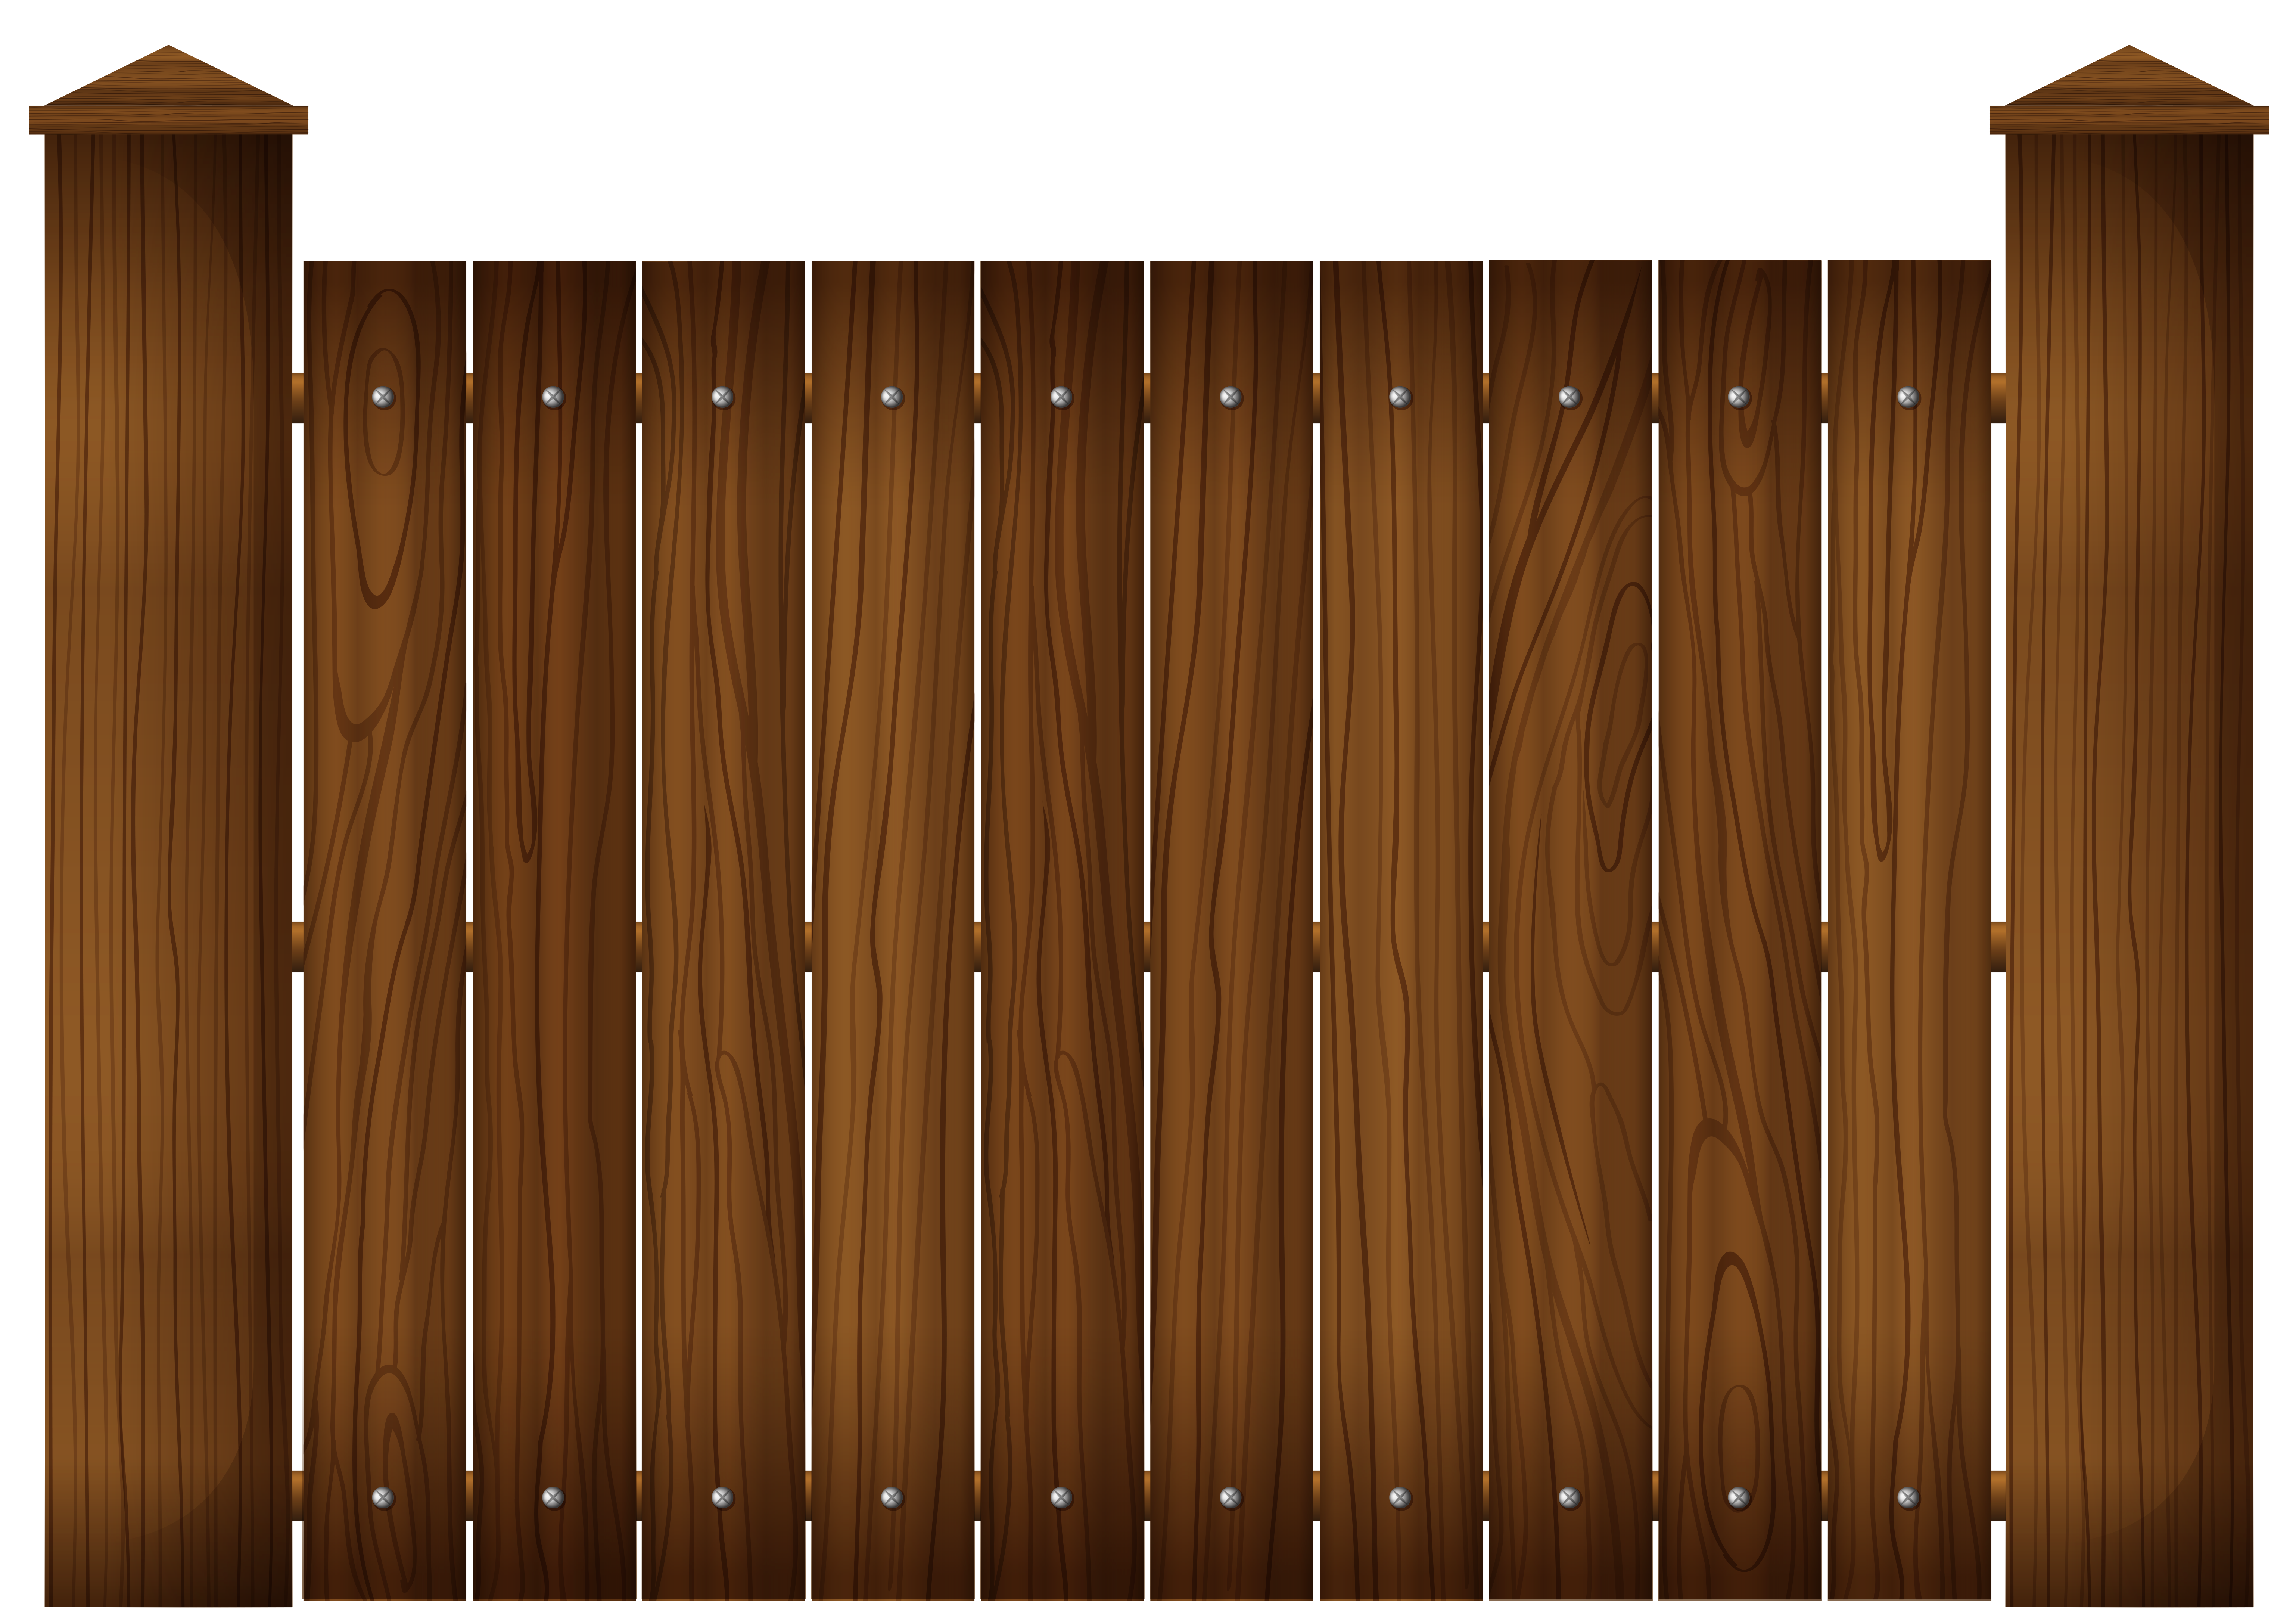 Wooden_Fence_Clipart_Picture.png?m=1429546993.